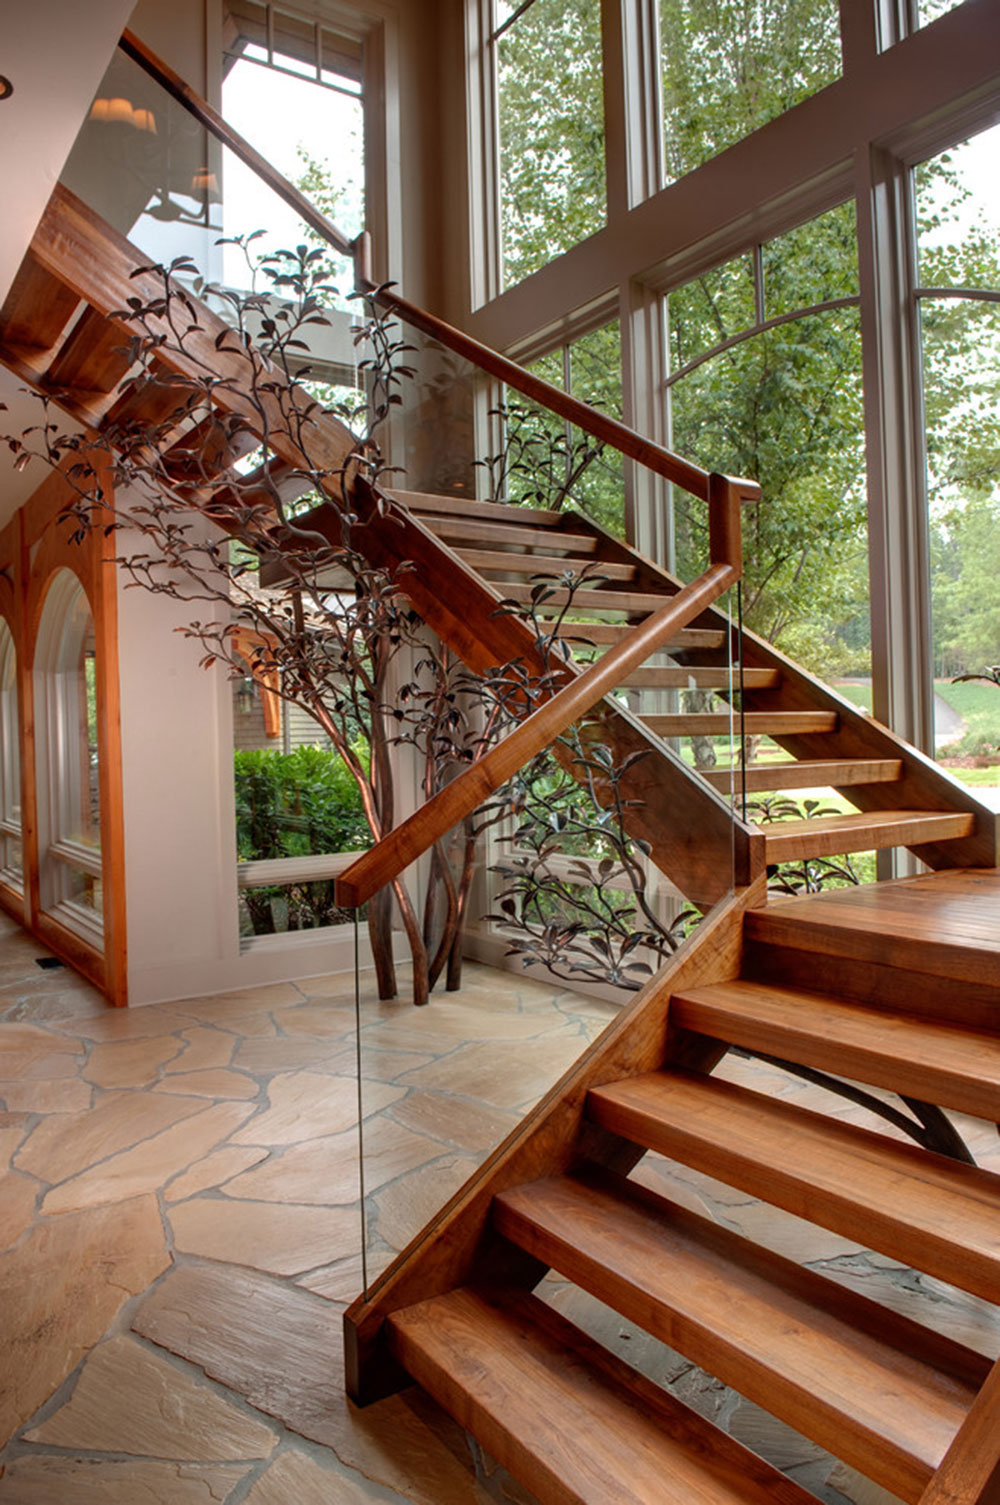 Modern and Exquisite Floating Staircase7 Modern and exquisite floating staircase designs